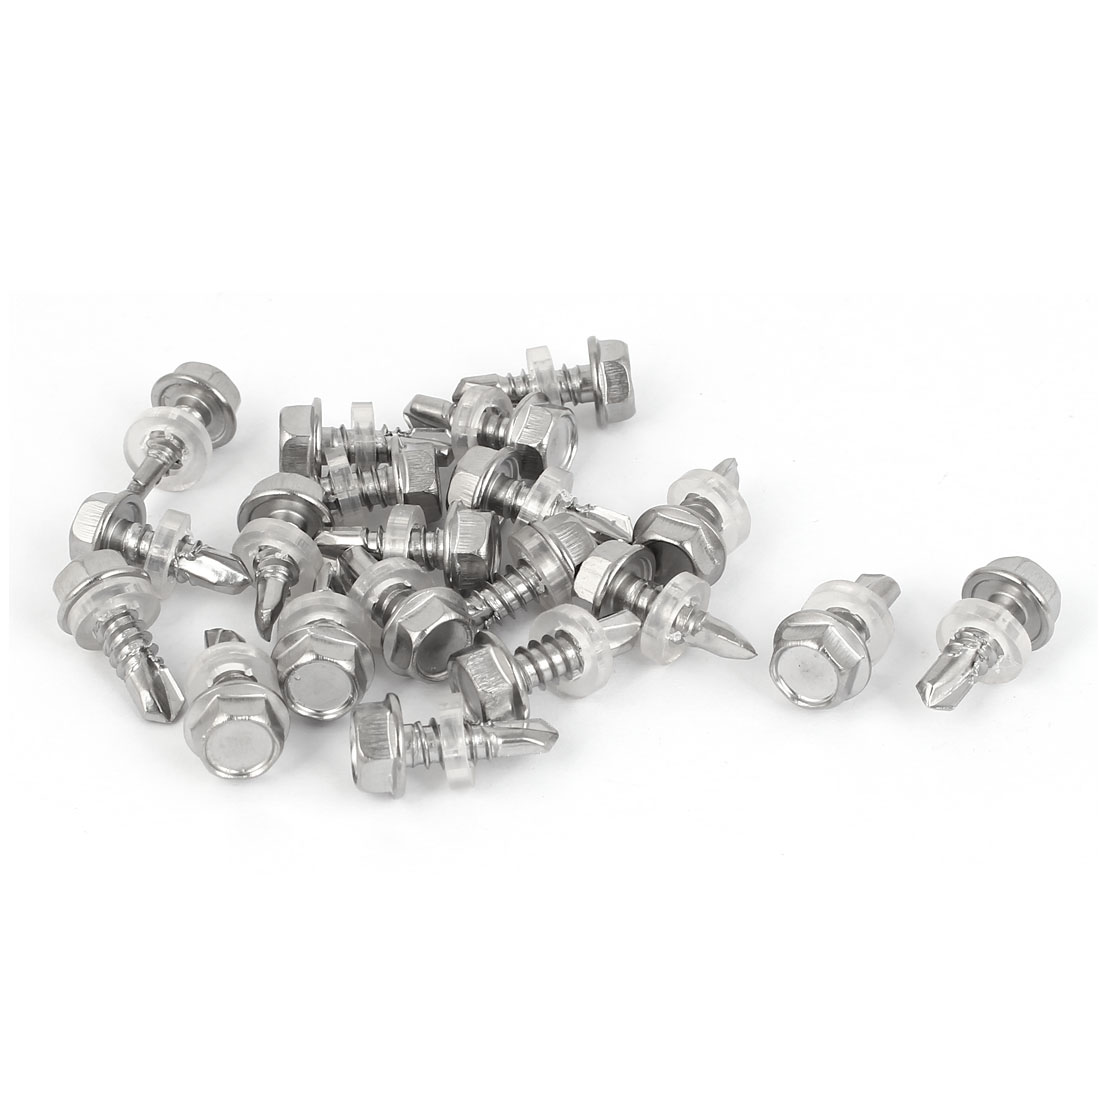 M6.3 x 19mm Male Thread 410 Stainless Steel Self Drilling Screw w Washer 20 Pcs